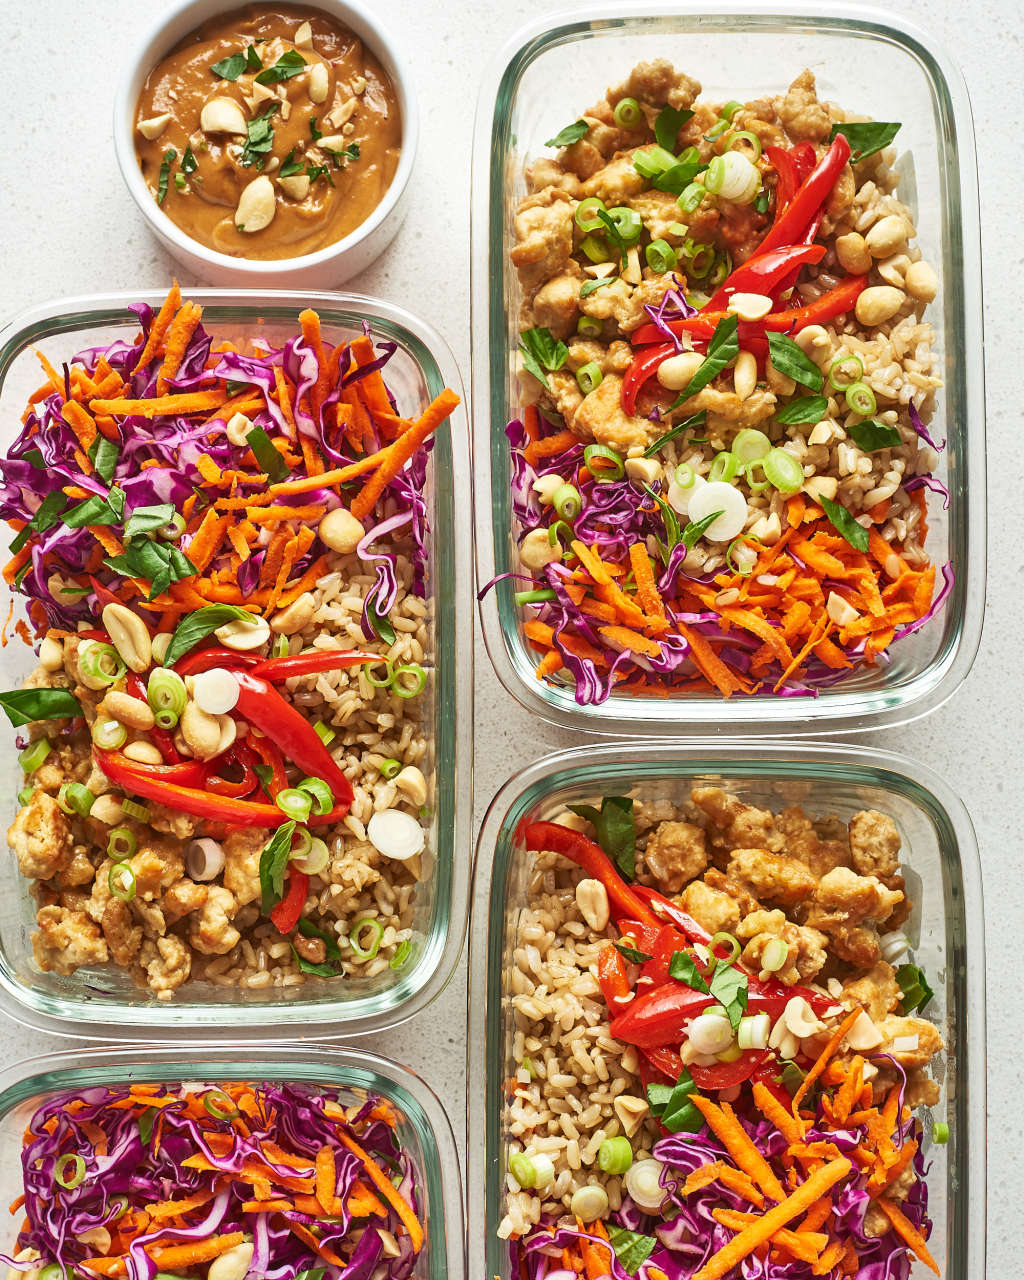 make-ahead lunches you can pack tonight | kitchn